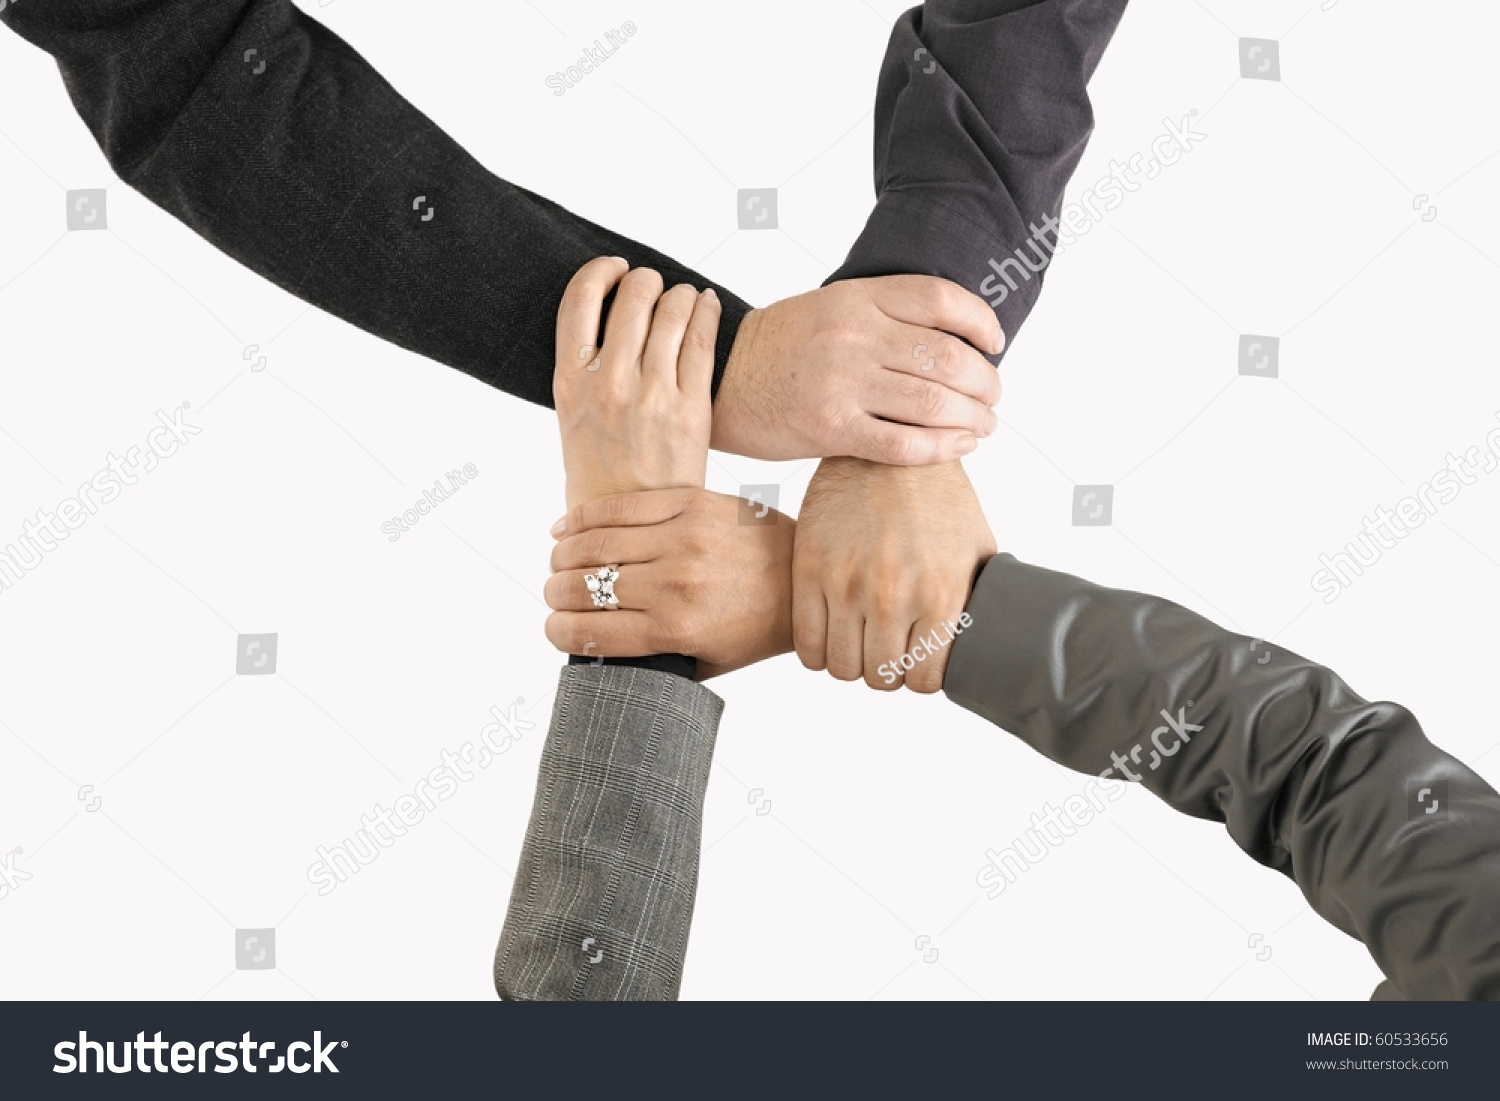 Technology Management Image: Businessteam Holding Hands Only Hands Closeup Stock Photo